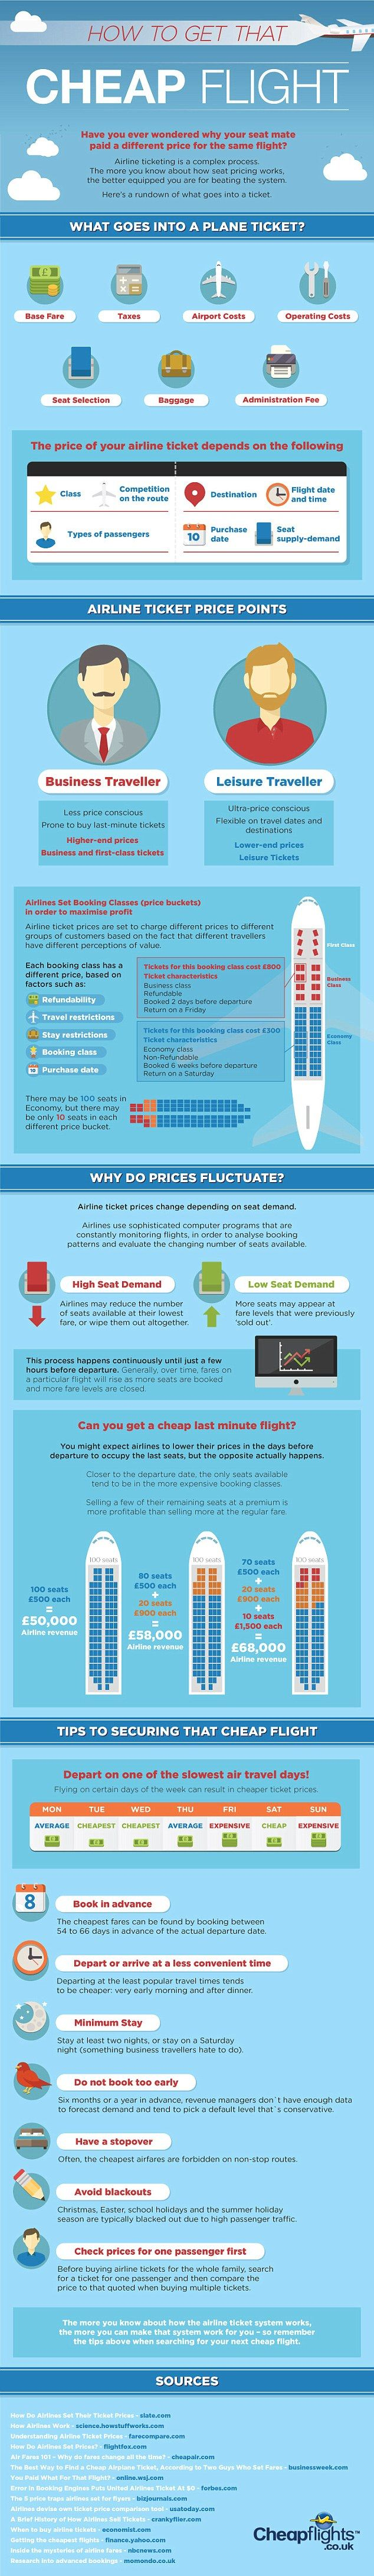 How to get a cheap flight: CheapFlights infographic shows how airlines REALLY work out the cost of your plane ticket.